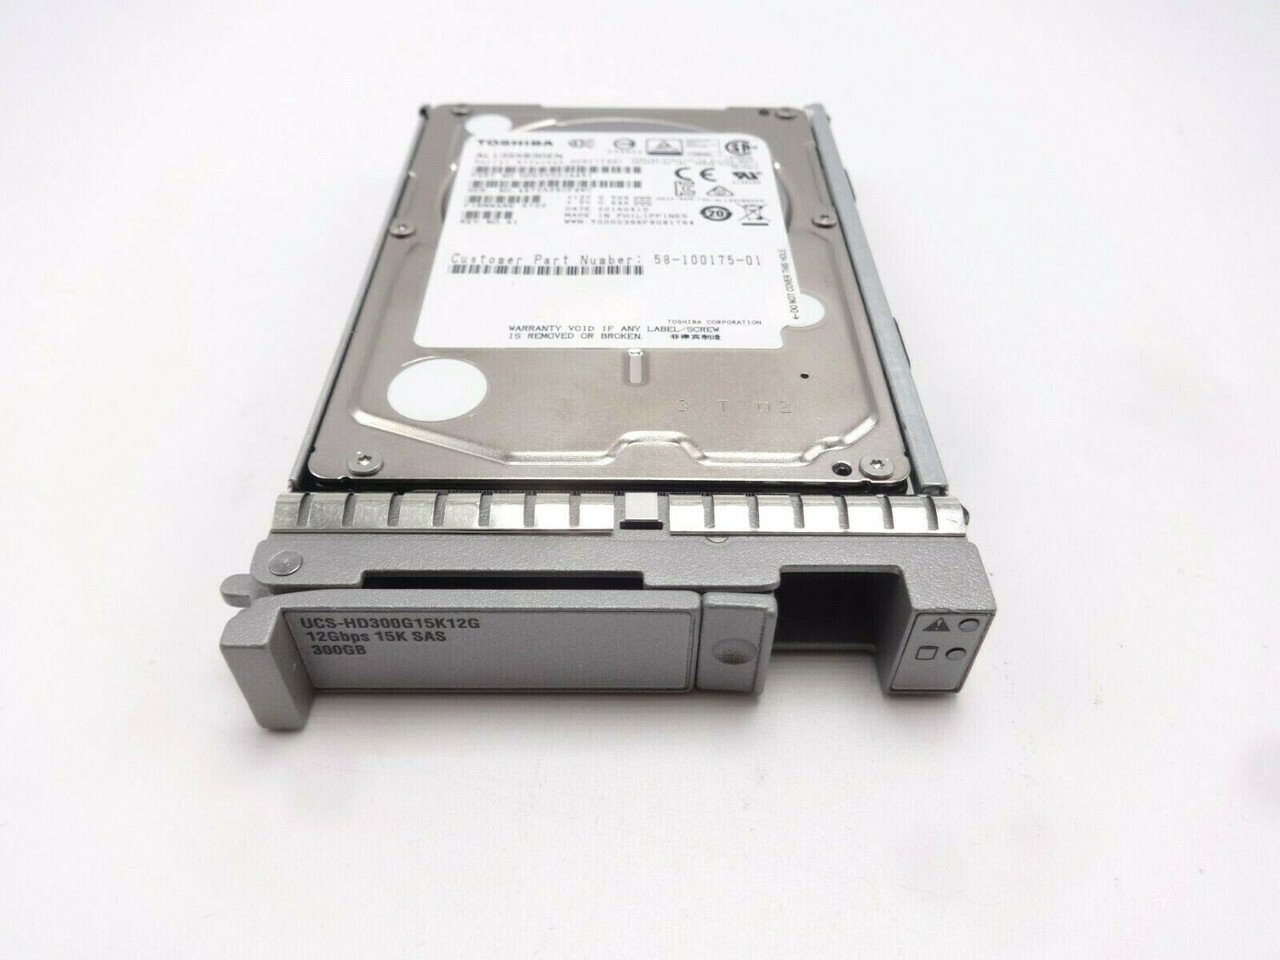 Cisco UCS-HD300G15K12G 300GB 15K 12Gbps 2.5 SFF Small Form Hard Drive with tray